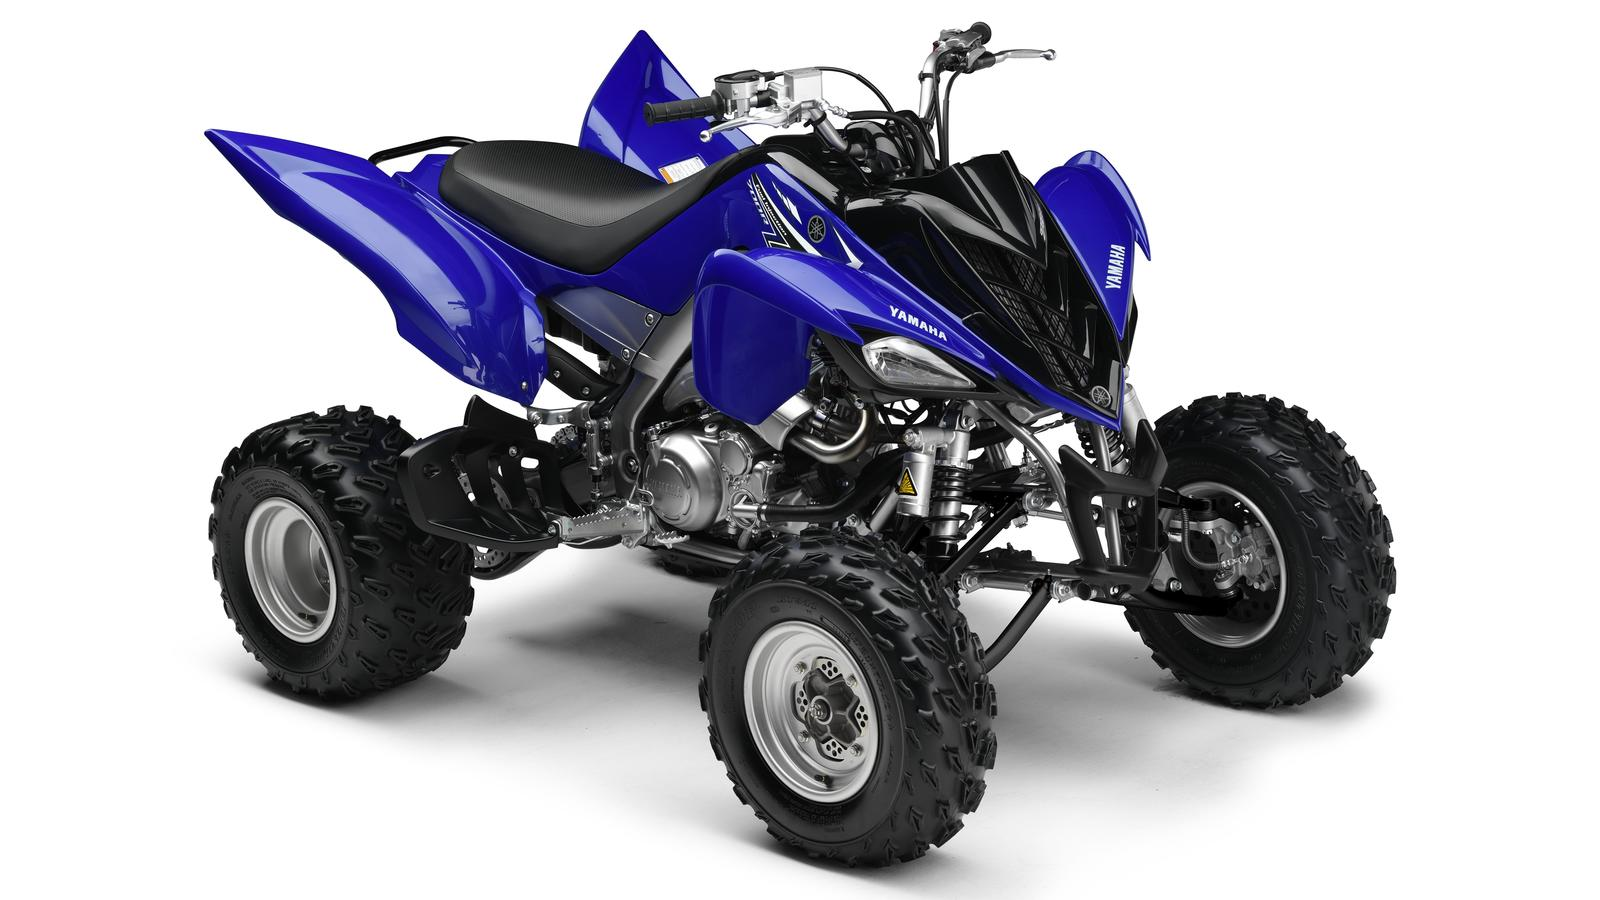 fiche revue technique yamaha yfm 700 r raptor 2011. Black Bedroom Furniture Sets. Home Design Ideas